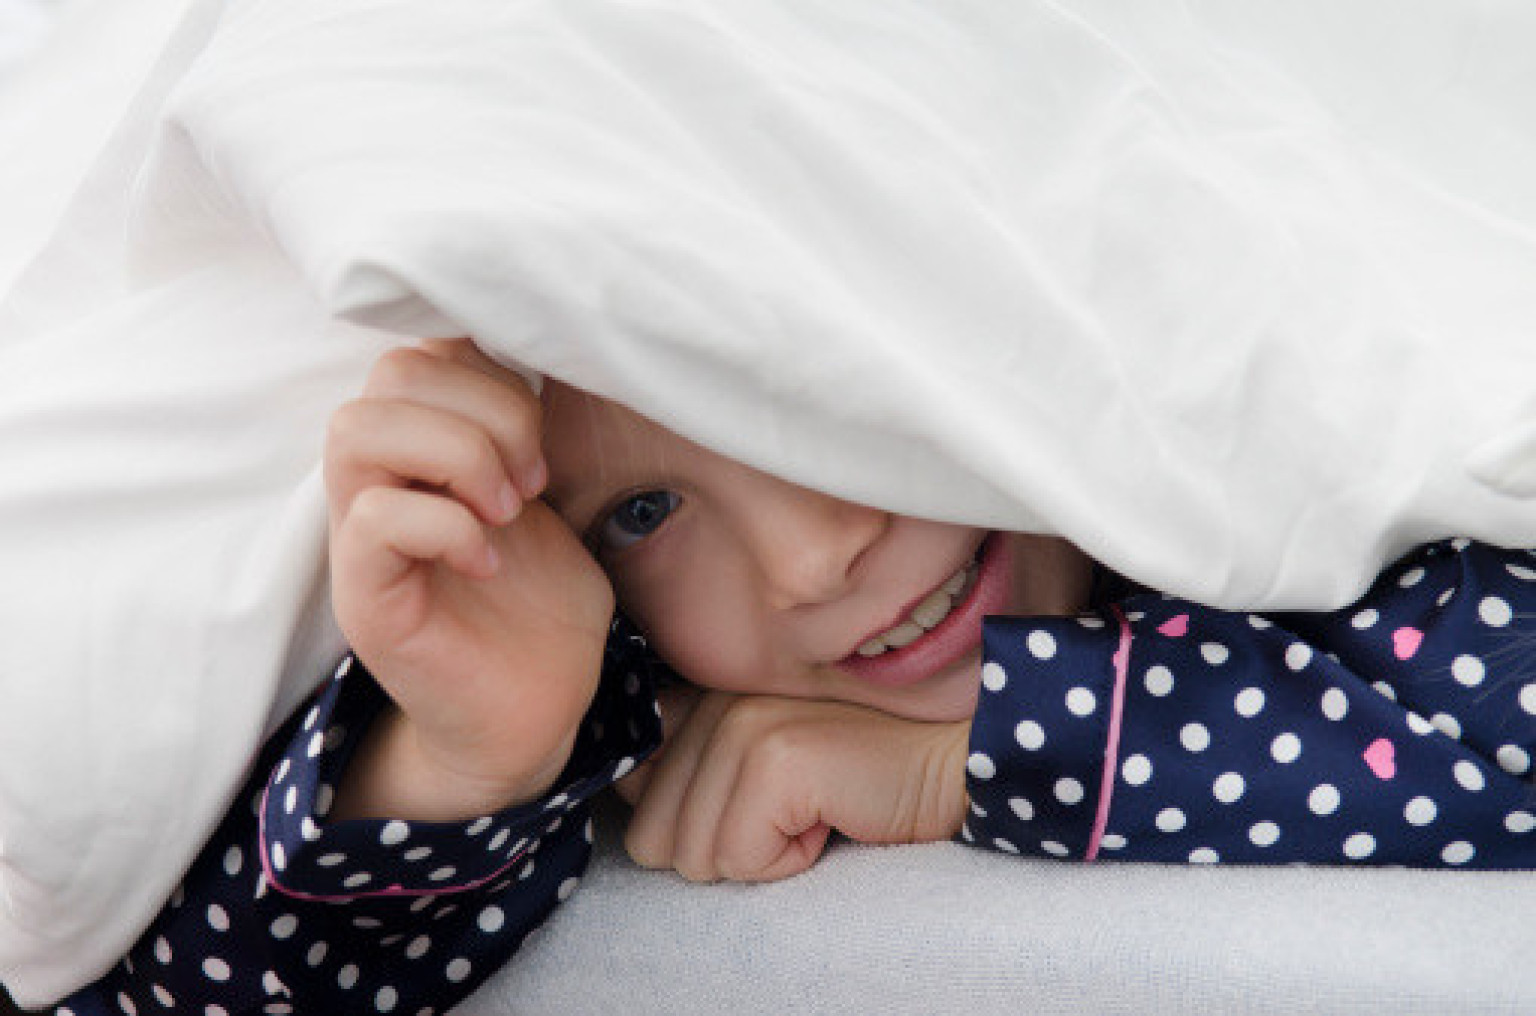 How To Deal With Your Child's Nighttime Wetting